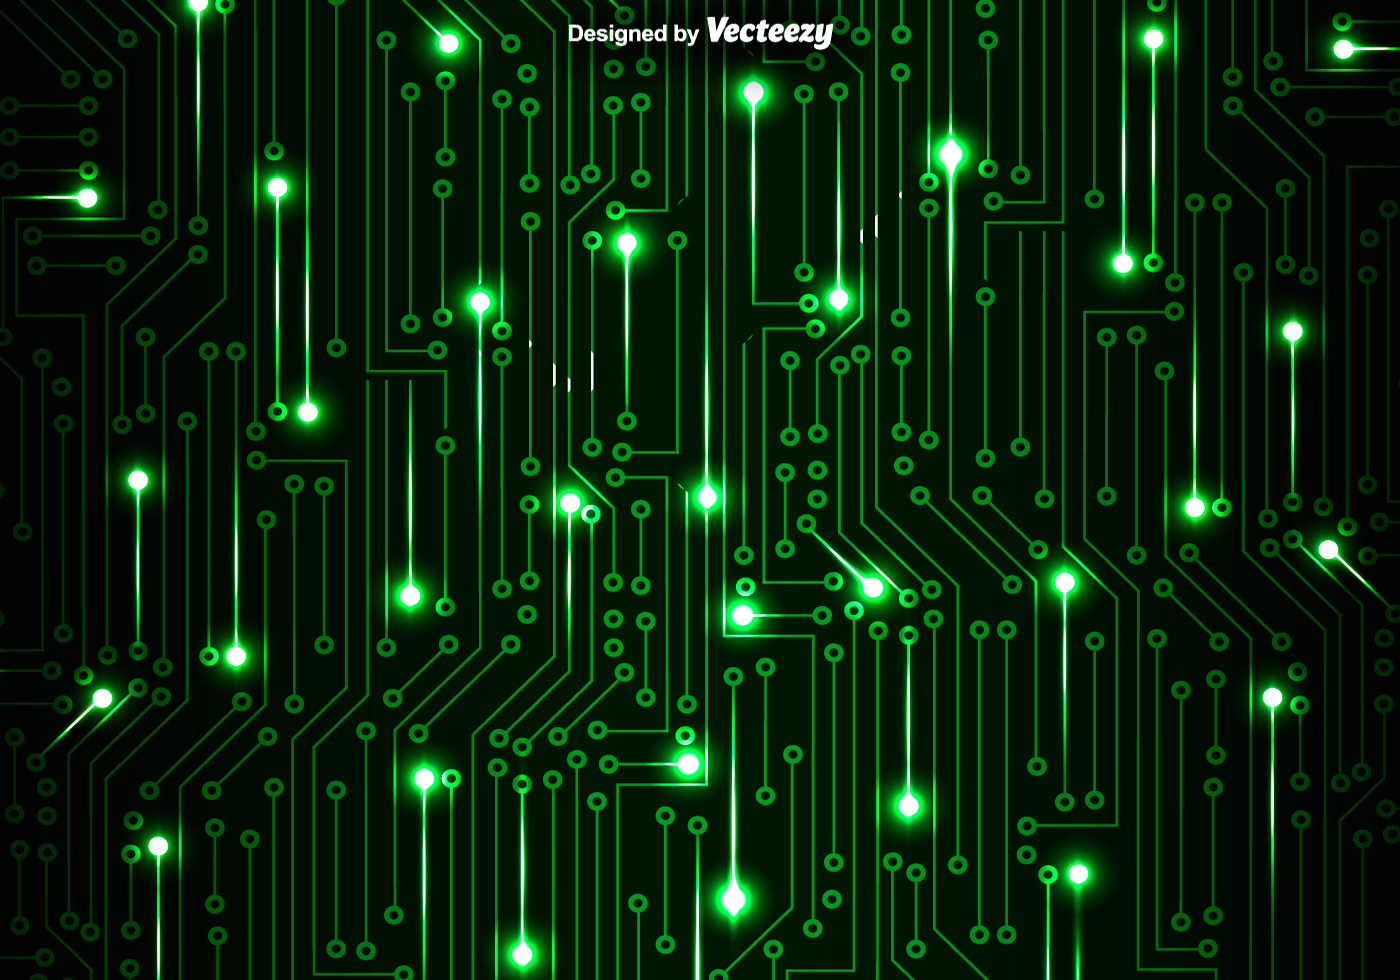 Motherboard Circuit Illustration: Green Circuit Board Vector Background